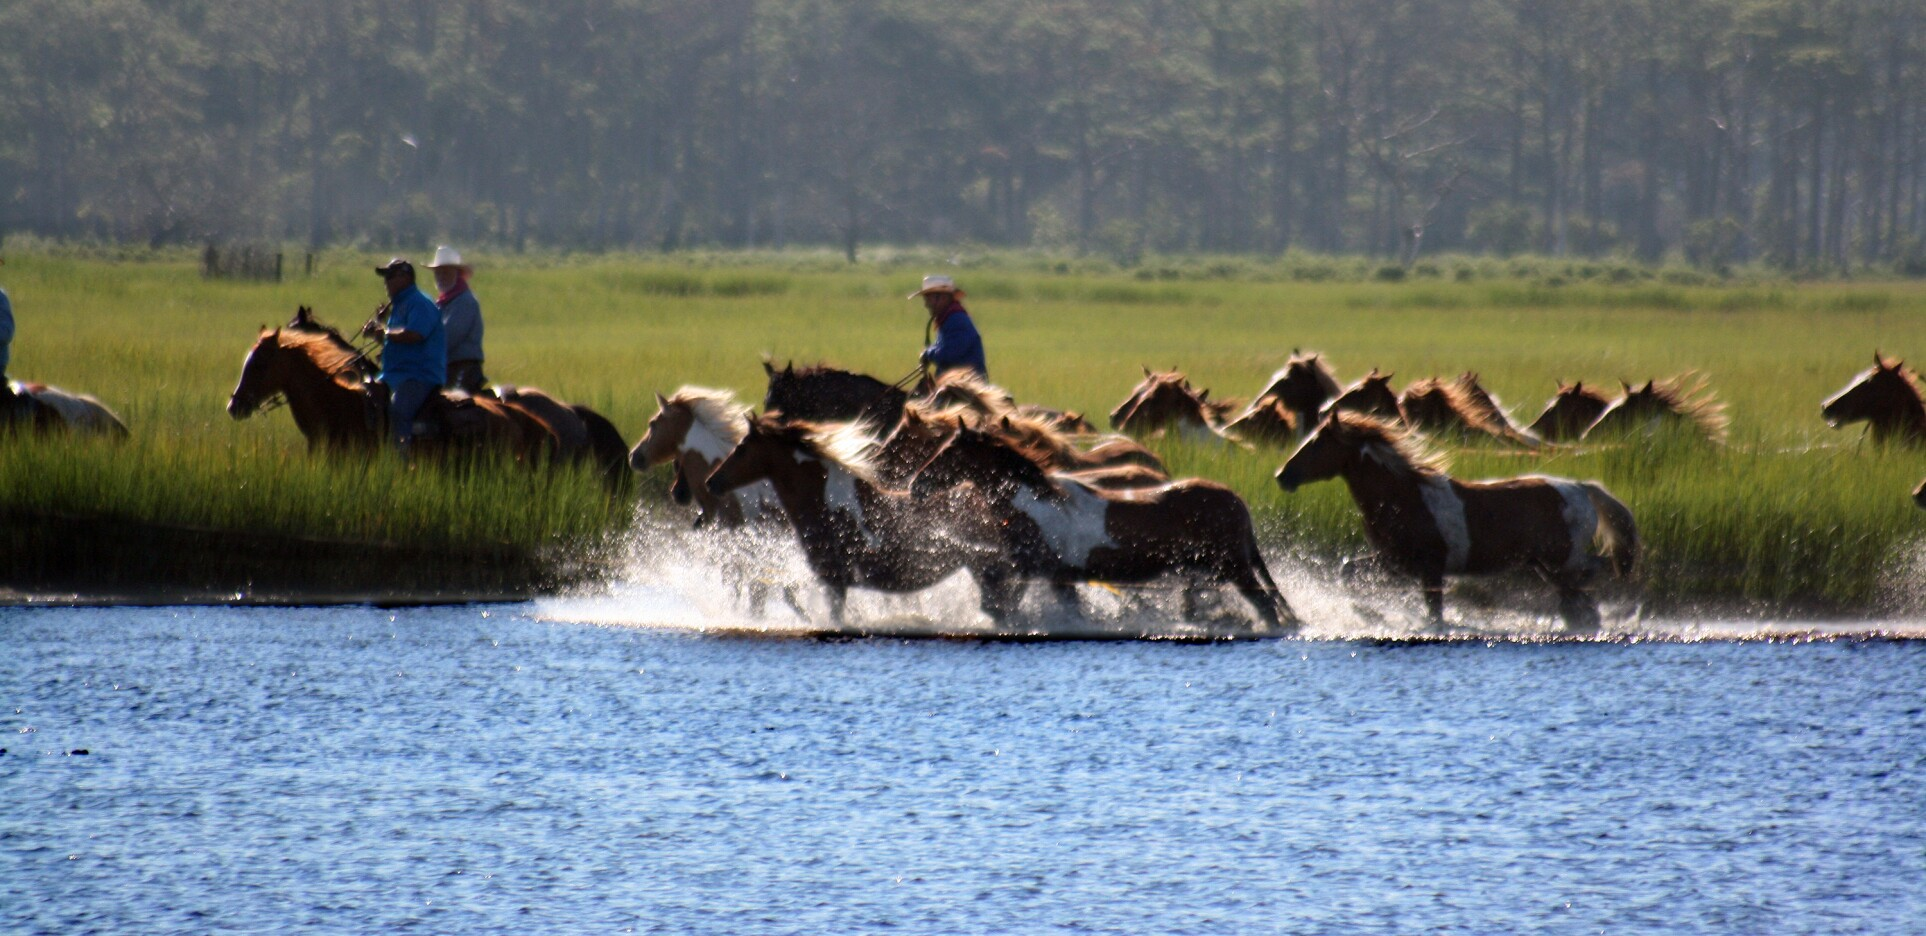 Wild Horses in Water by Captain's Cove Golf & Yacht Club